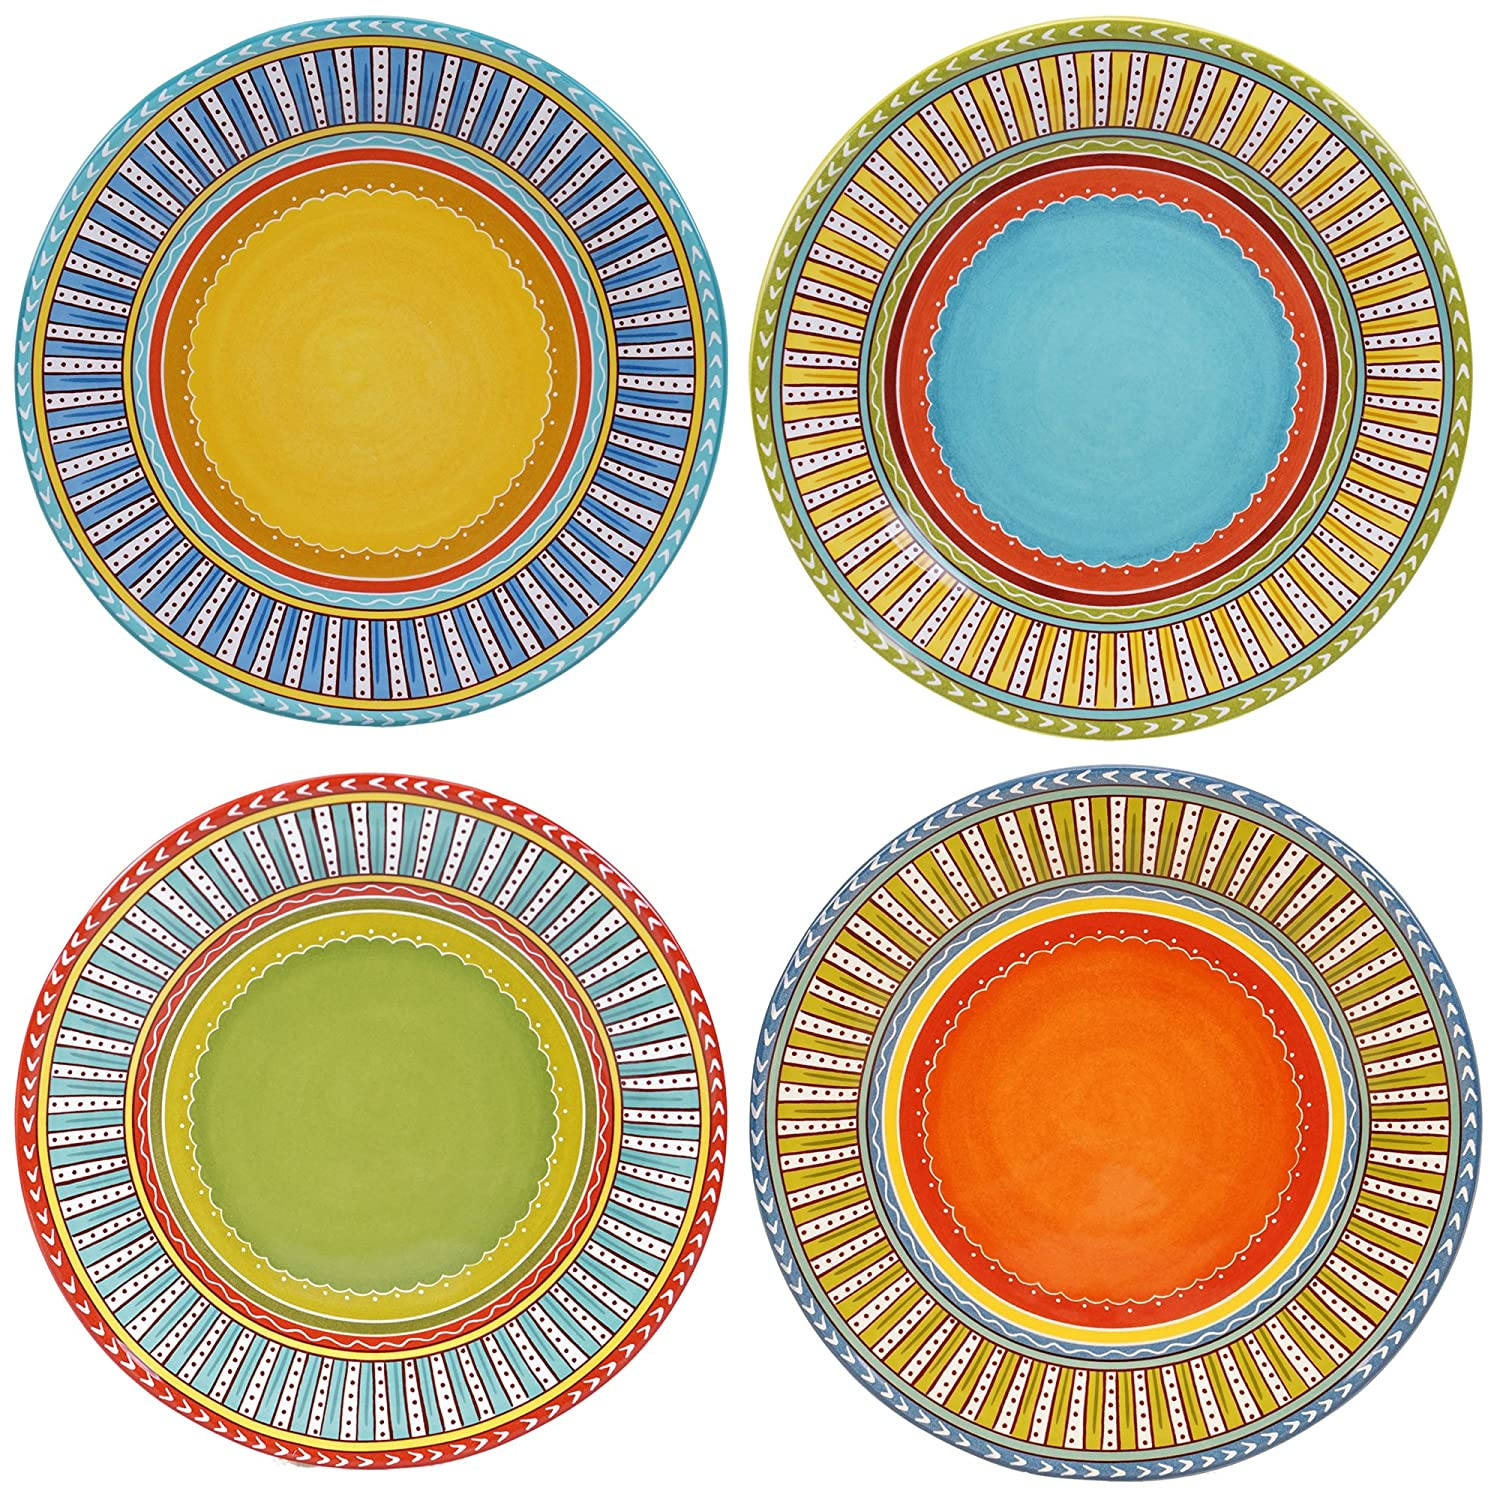 Certified International Valencia Dinner Plates (Set of 4), 11.25